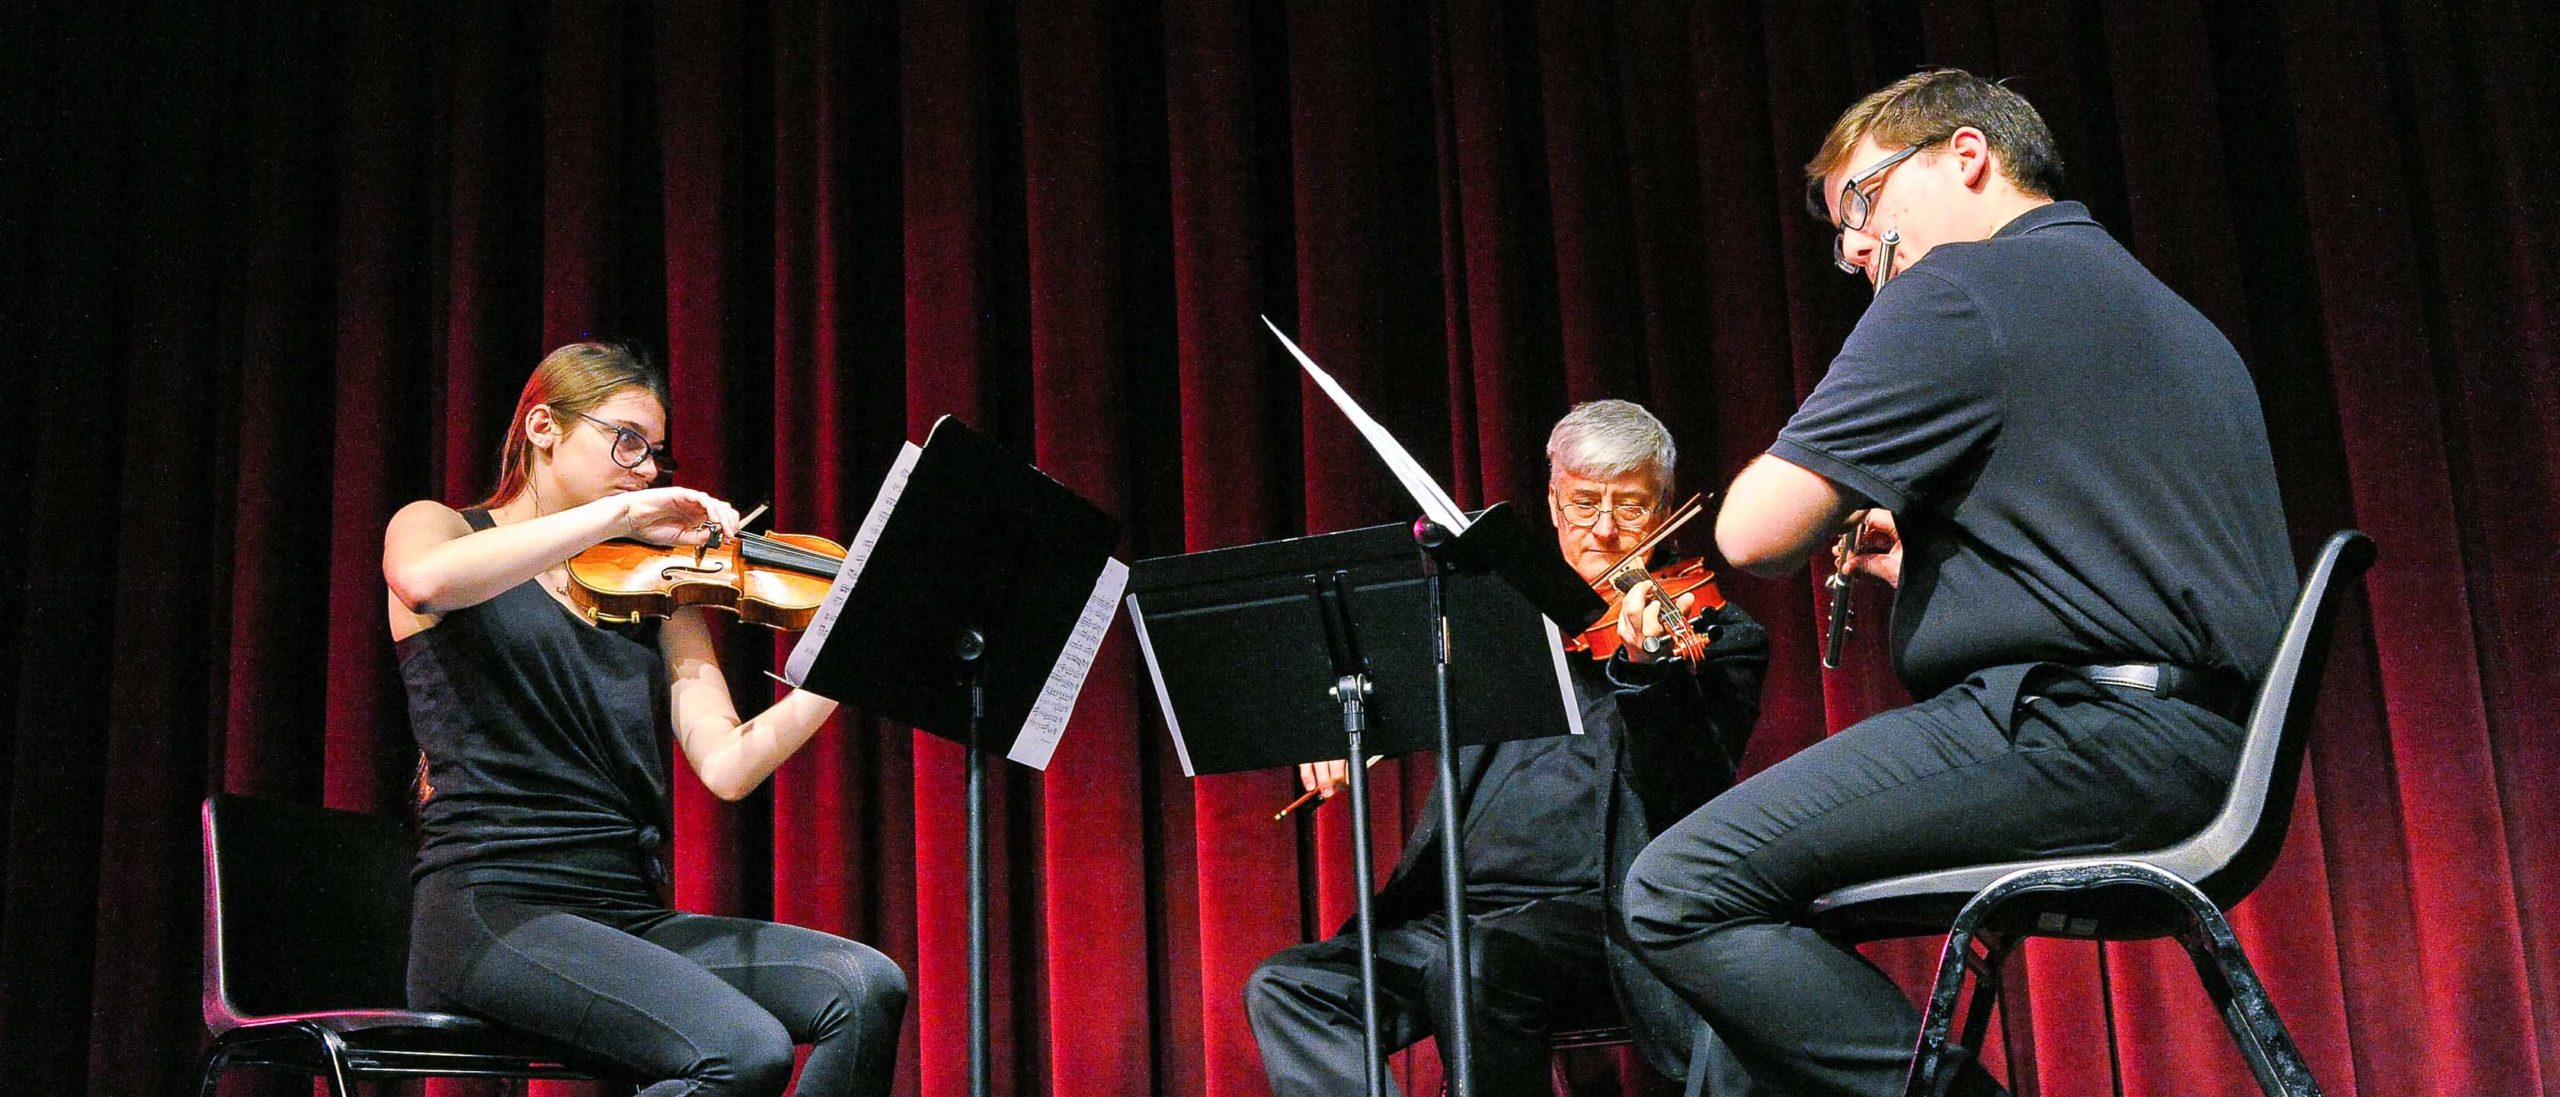 Two students and a faculty member playing string instruments on stage